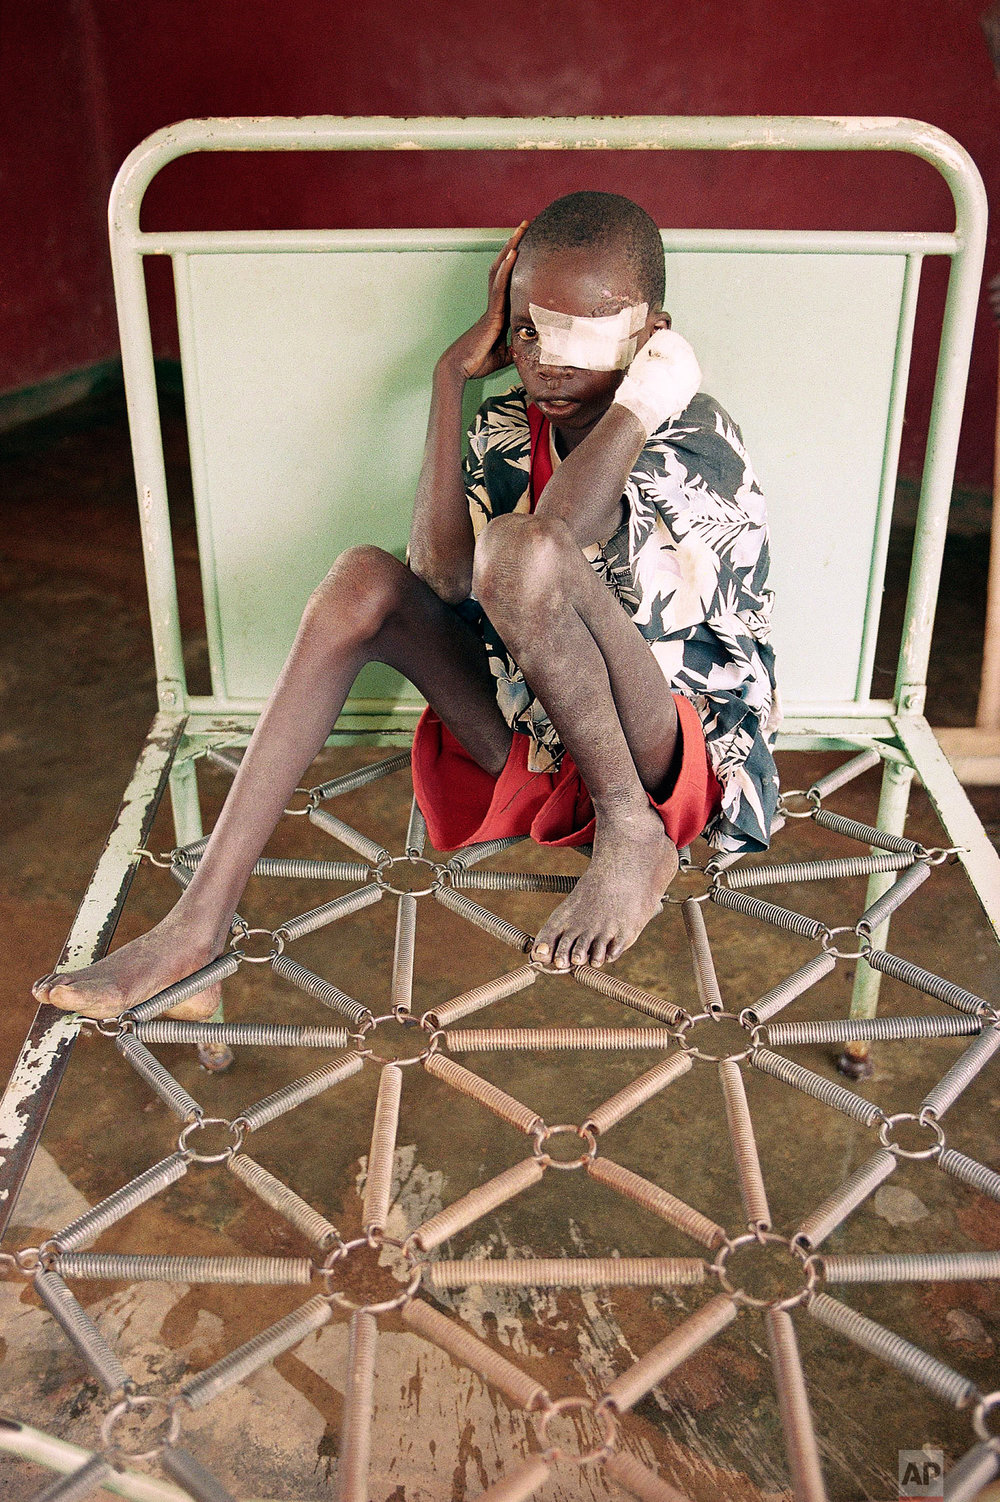 Reverien Rurangua, who was wounded in a machete attack and evacuated by the Red Cross from Kabgayi, near Kigali, sits on a bed with no mattress at a hospital in Nyanza, some 35 miles south of the capital Kigali, in Rwanda, on June 4, 1994. (AP Photo/Jean-Marc Bouju)